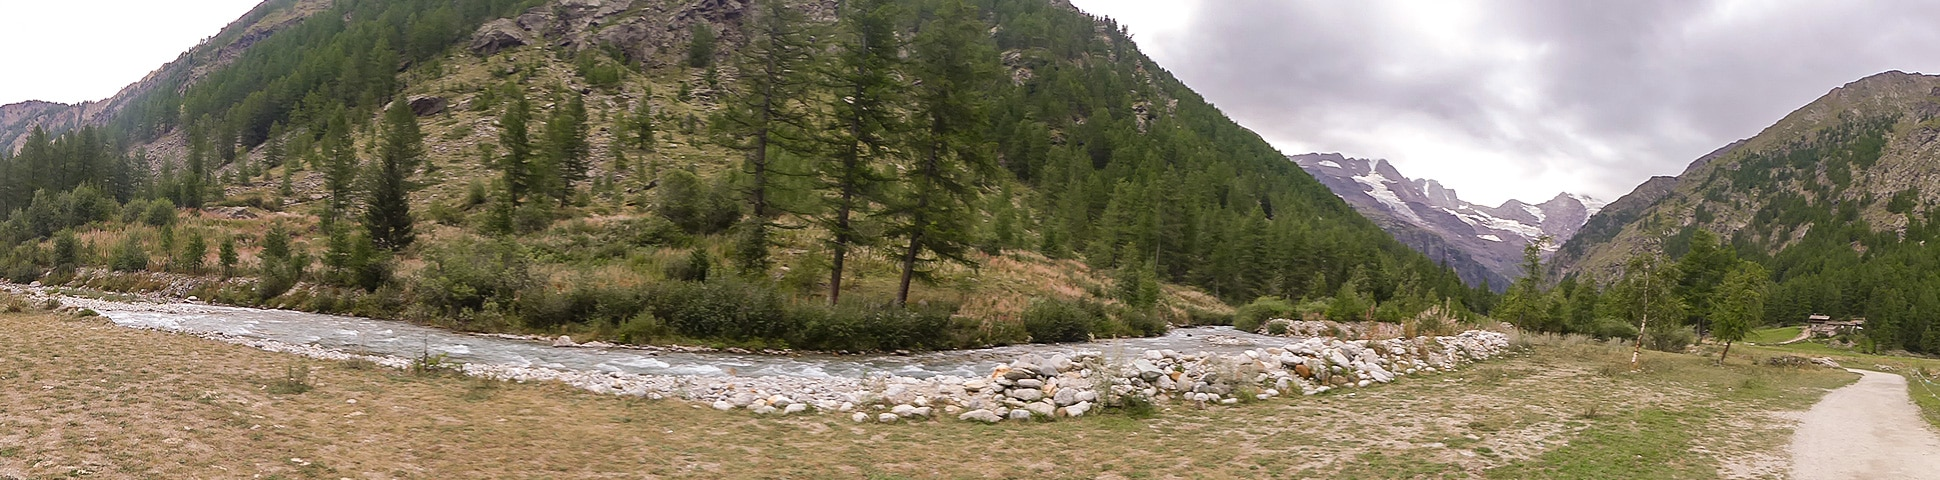 Panoramic view of Valnontey River trail near Aosta Valley